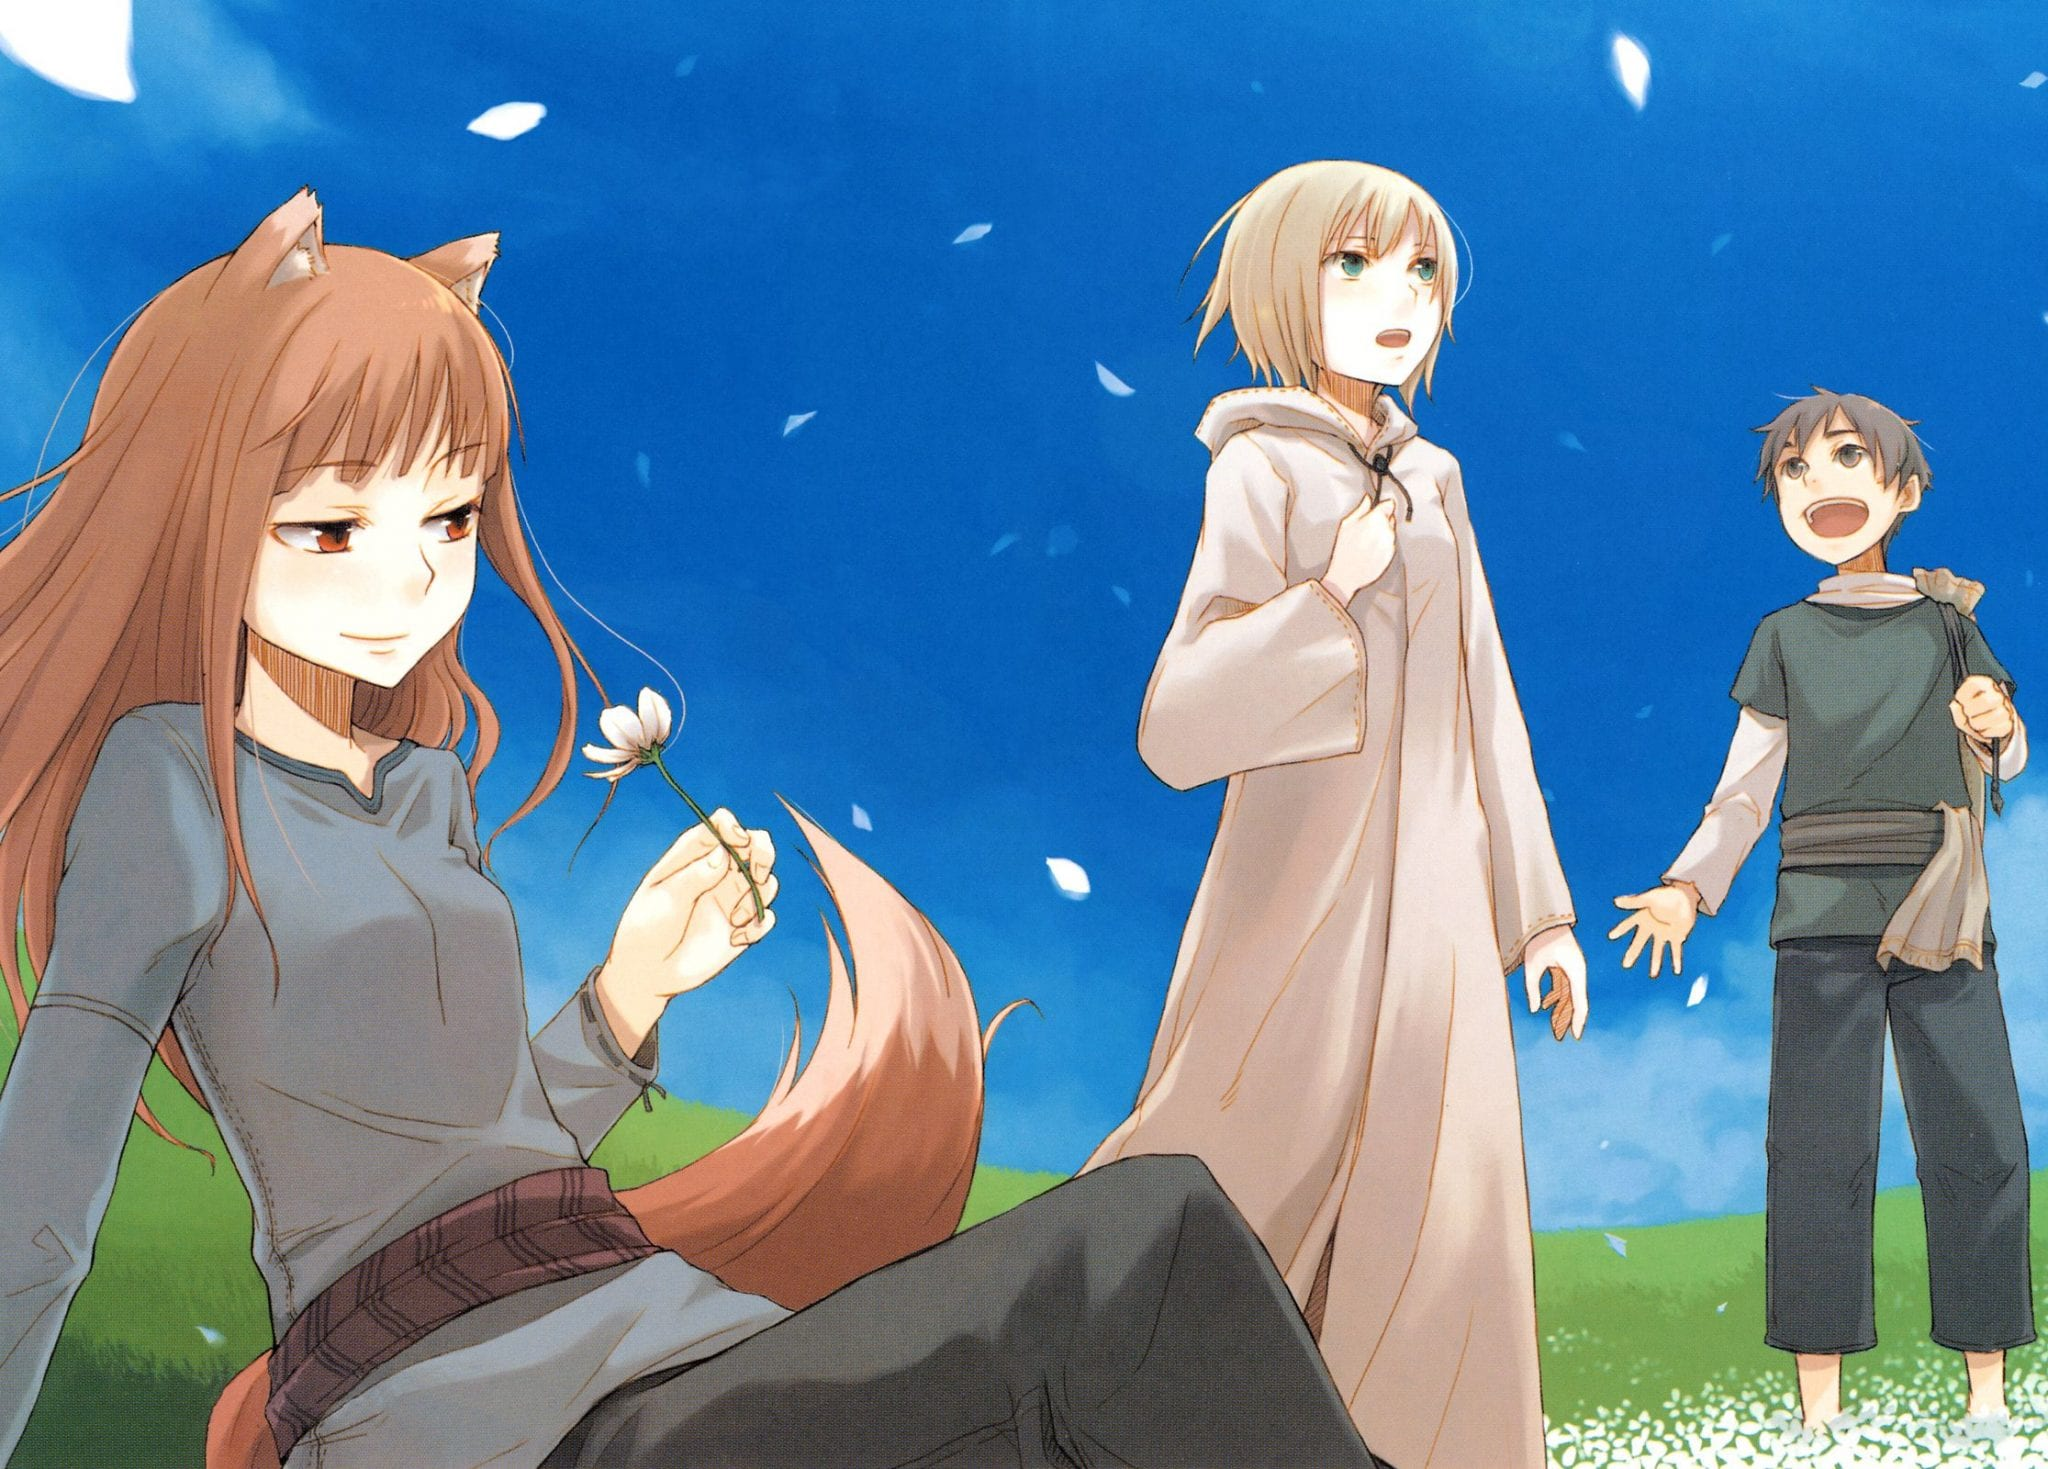 spice and wolf characters